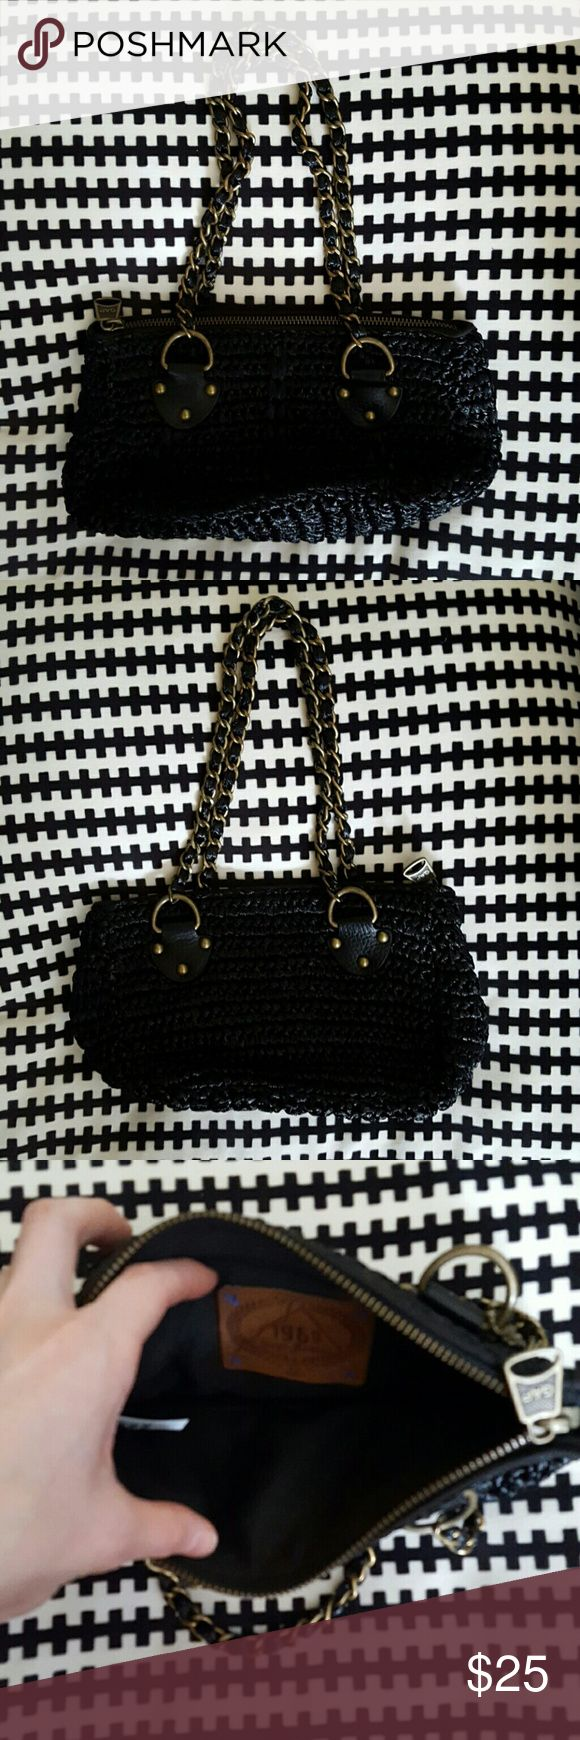 NWOT Gap Black Woven Purse Gap 1969 Jeans black woven purse with bronze hardware. 10 x 5 inches. Small zippered pocket inside. GAP Bags Mini Bags